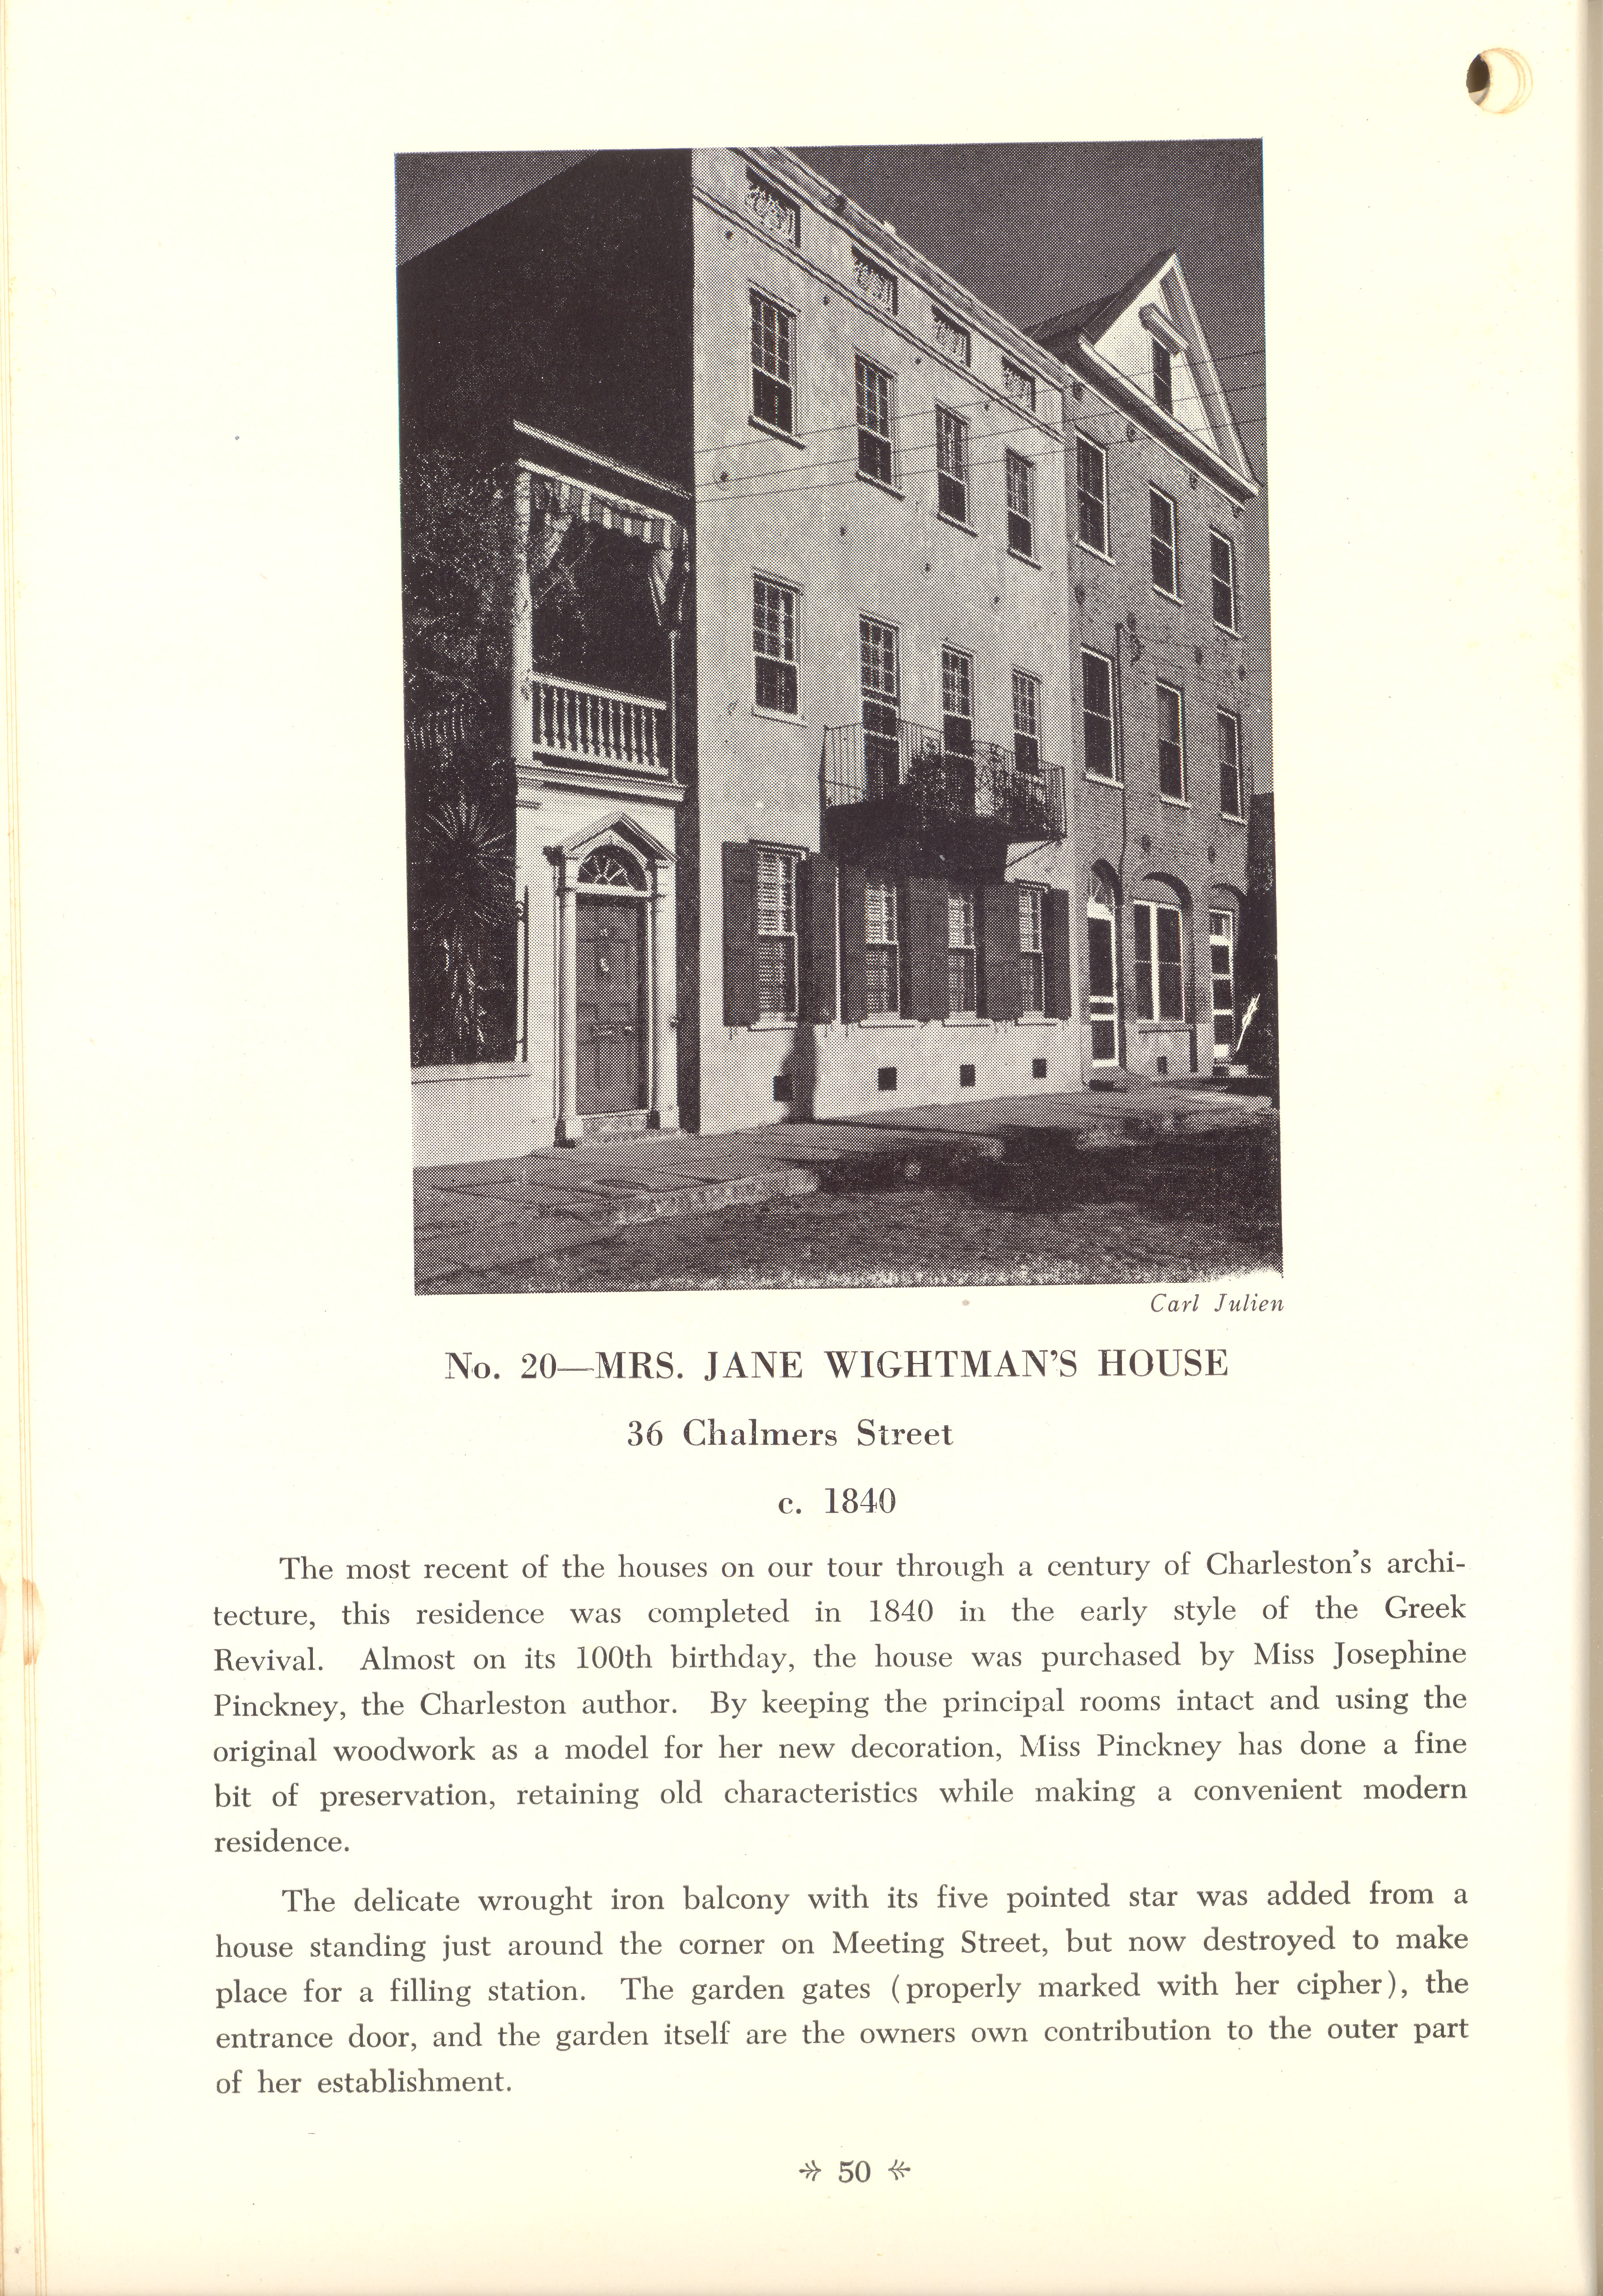 Page 50:  No. 20 - Mrs. Jane Wightman's House, 36 Chalmers Street, c. 1840